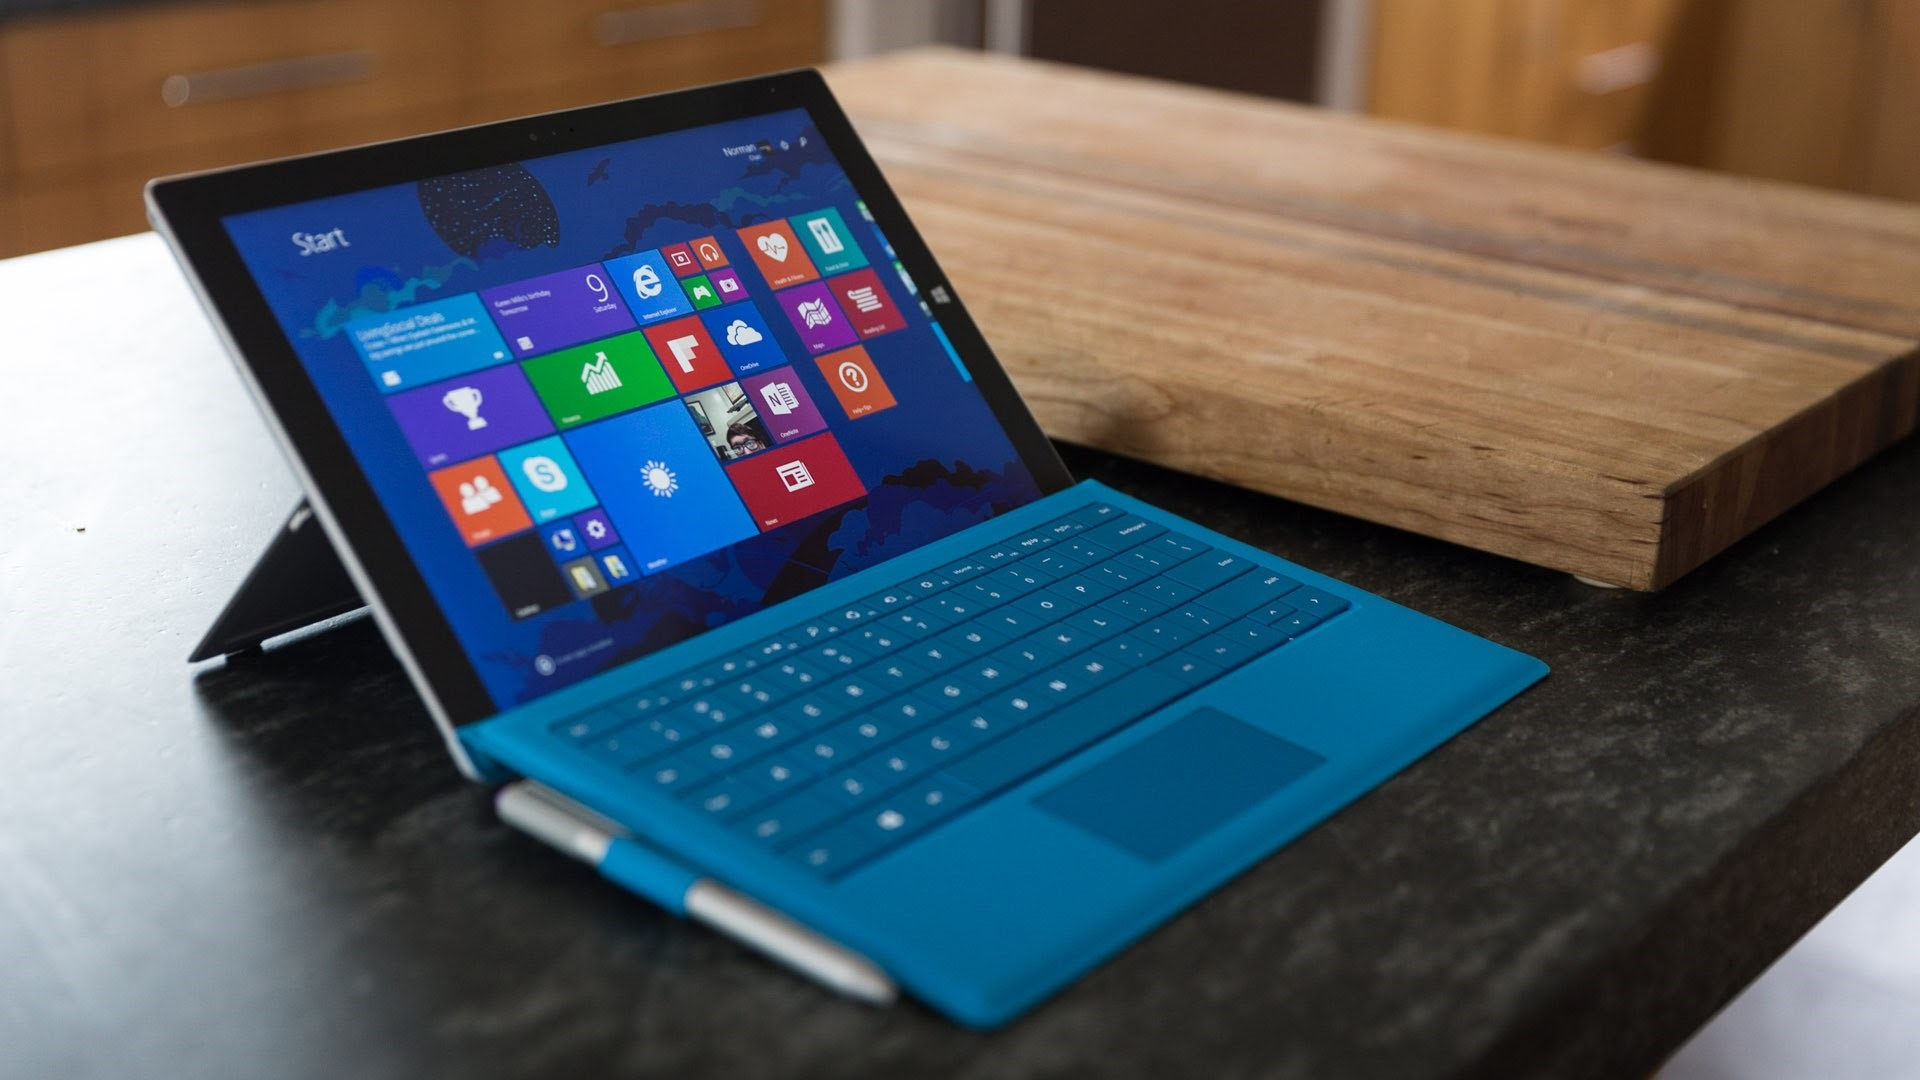 Apple iPad Pro vs. Microsoft Surface Pro 4: Which 2-in-1 device to get?